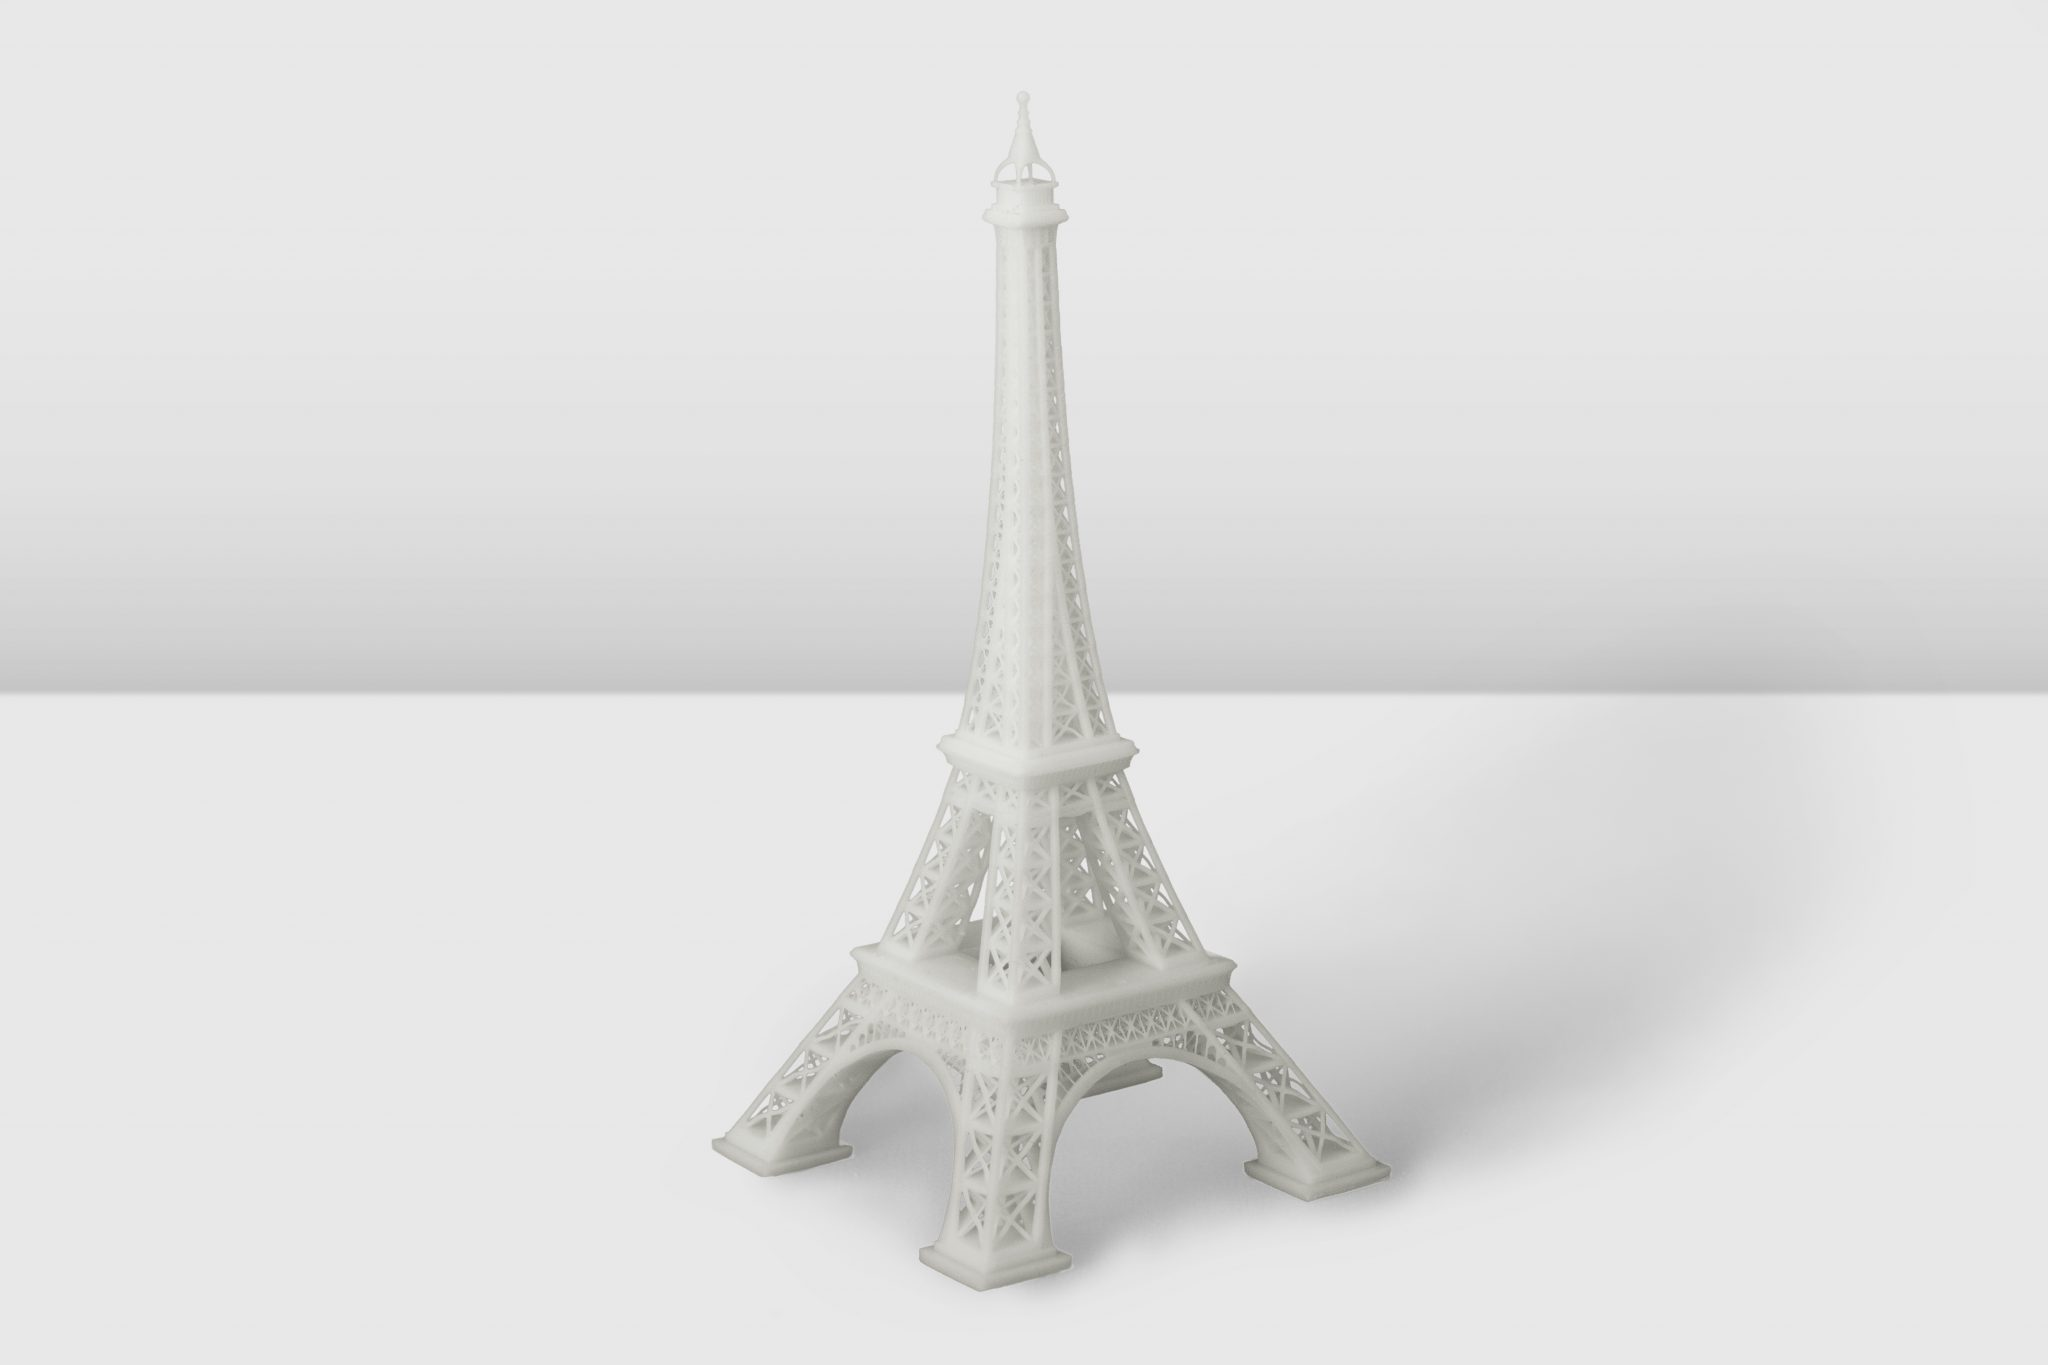 Eiffel Tower model 3D printed on the Inkspire.